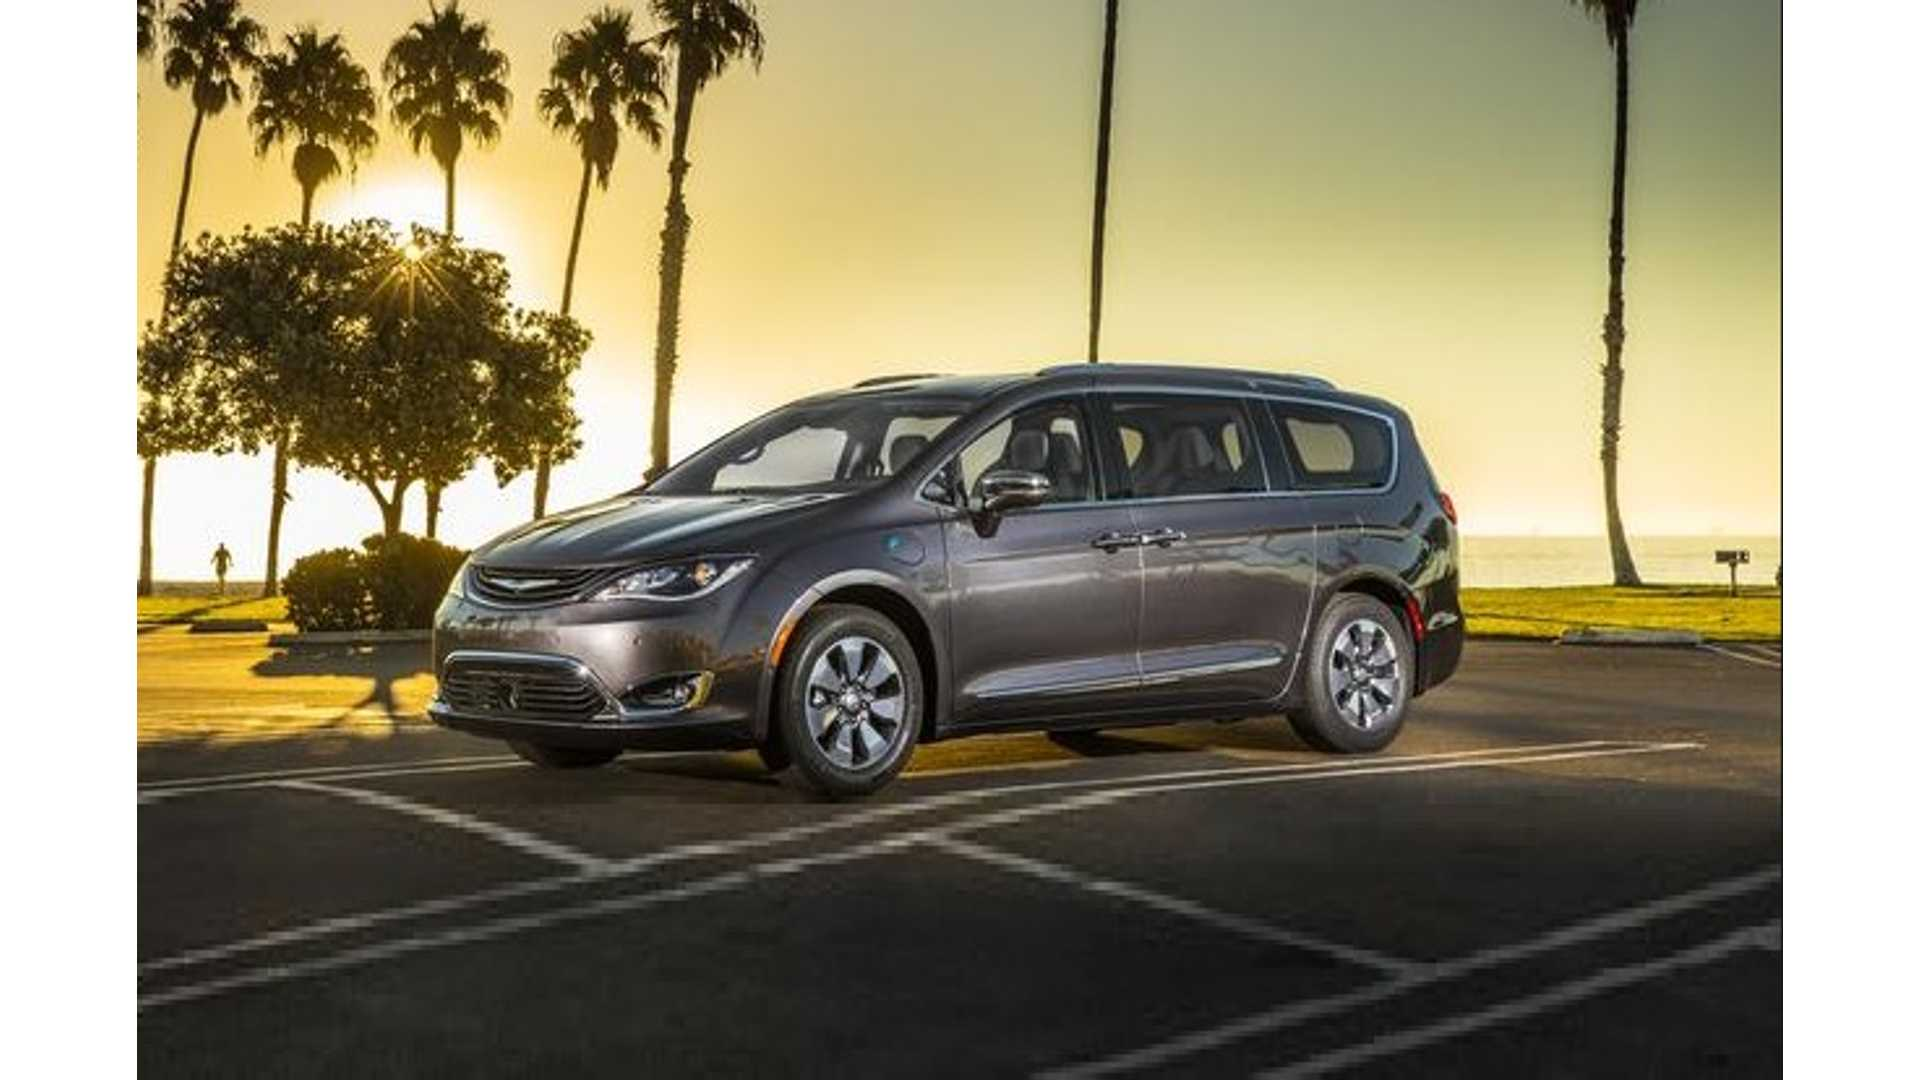 All Chrysler Pacifica Hybrids Recalled